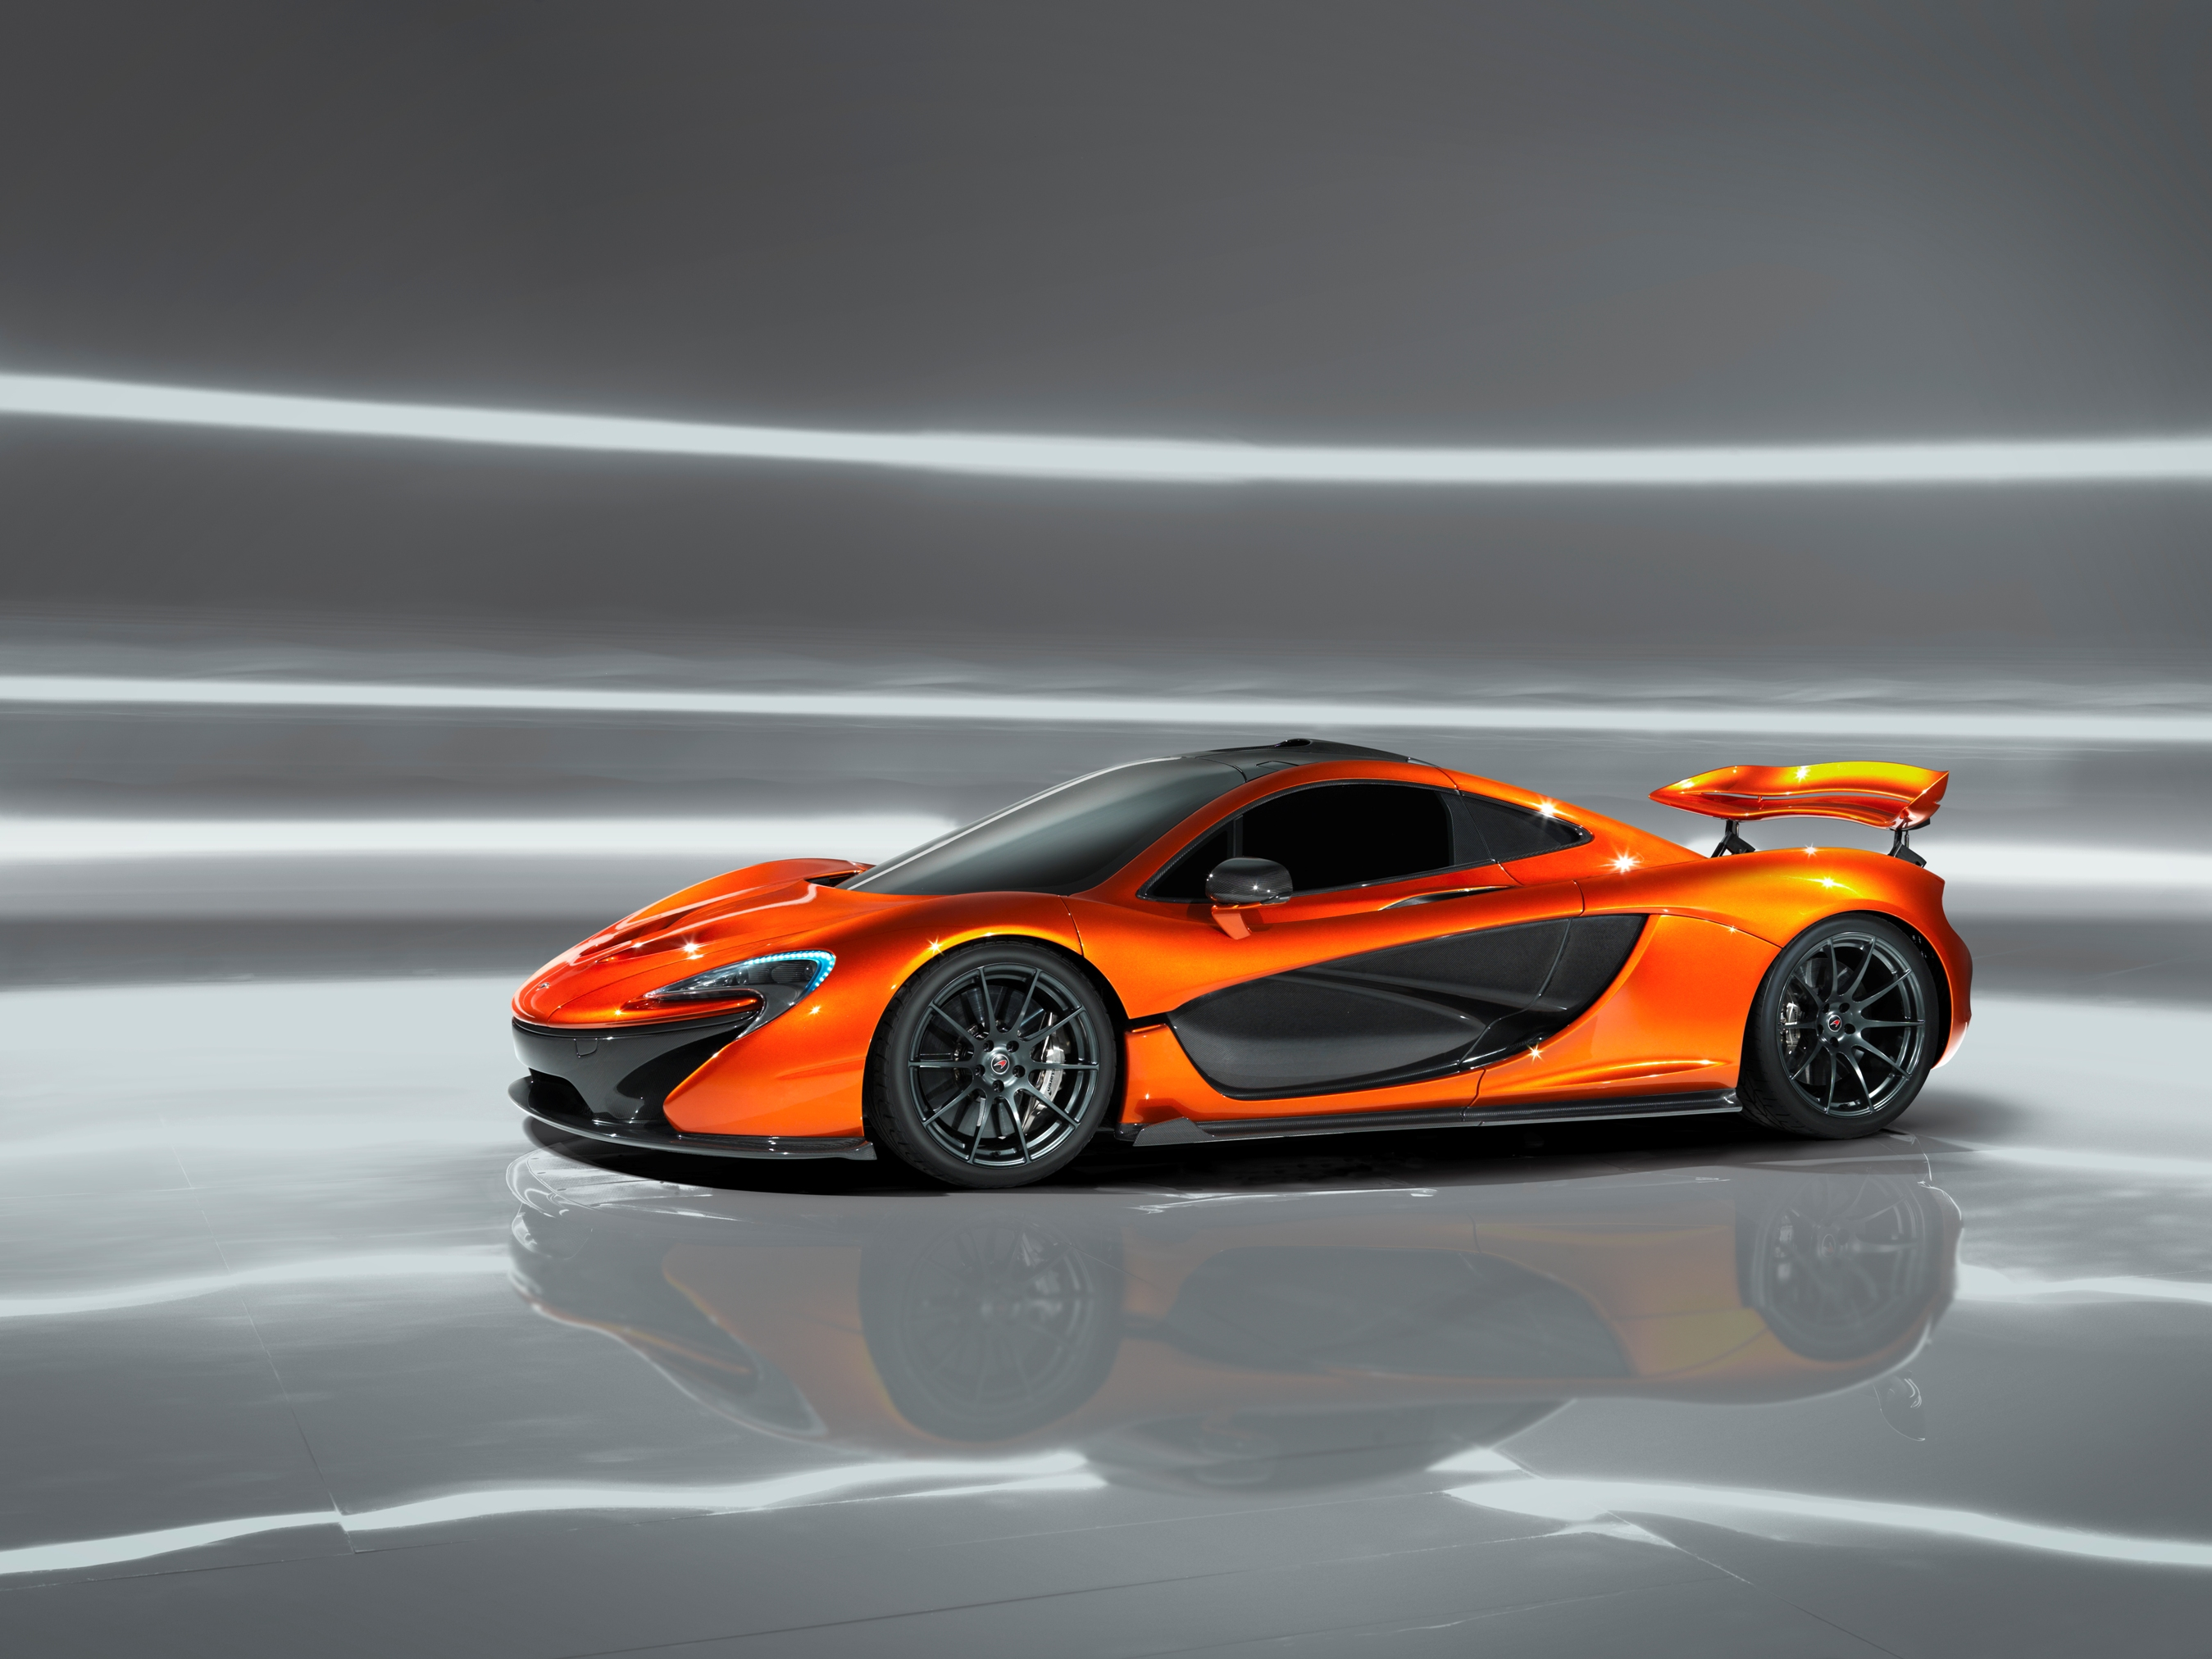 McLaren P1 Paris design concept - profile with wing raised